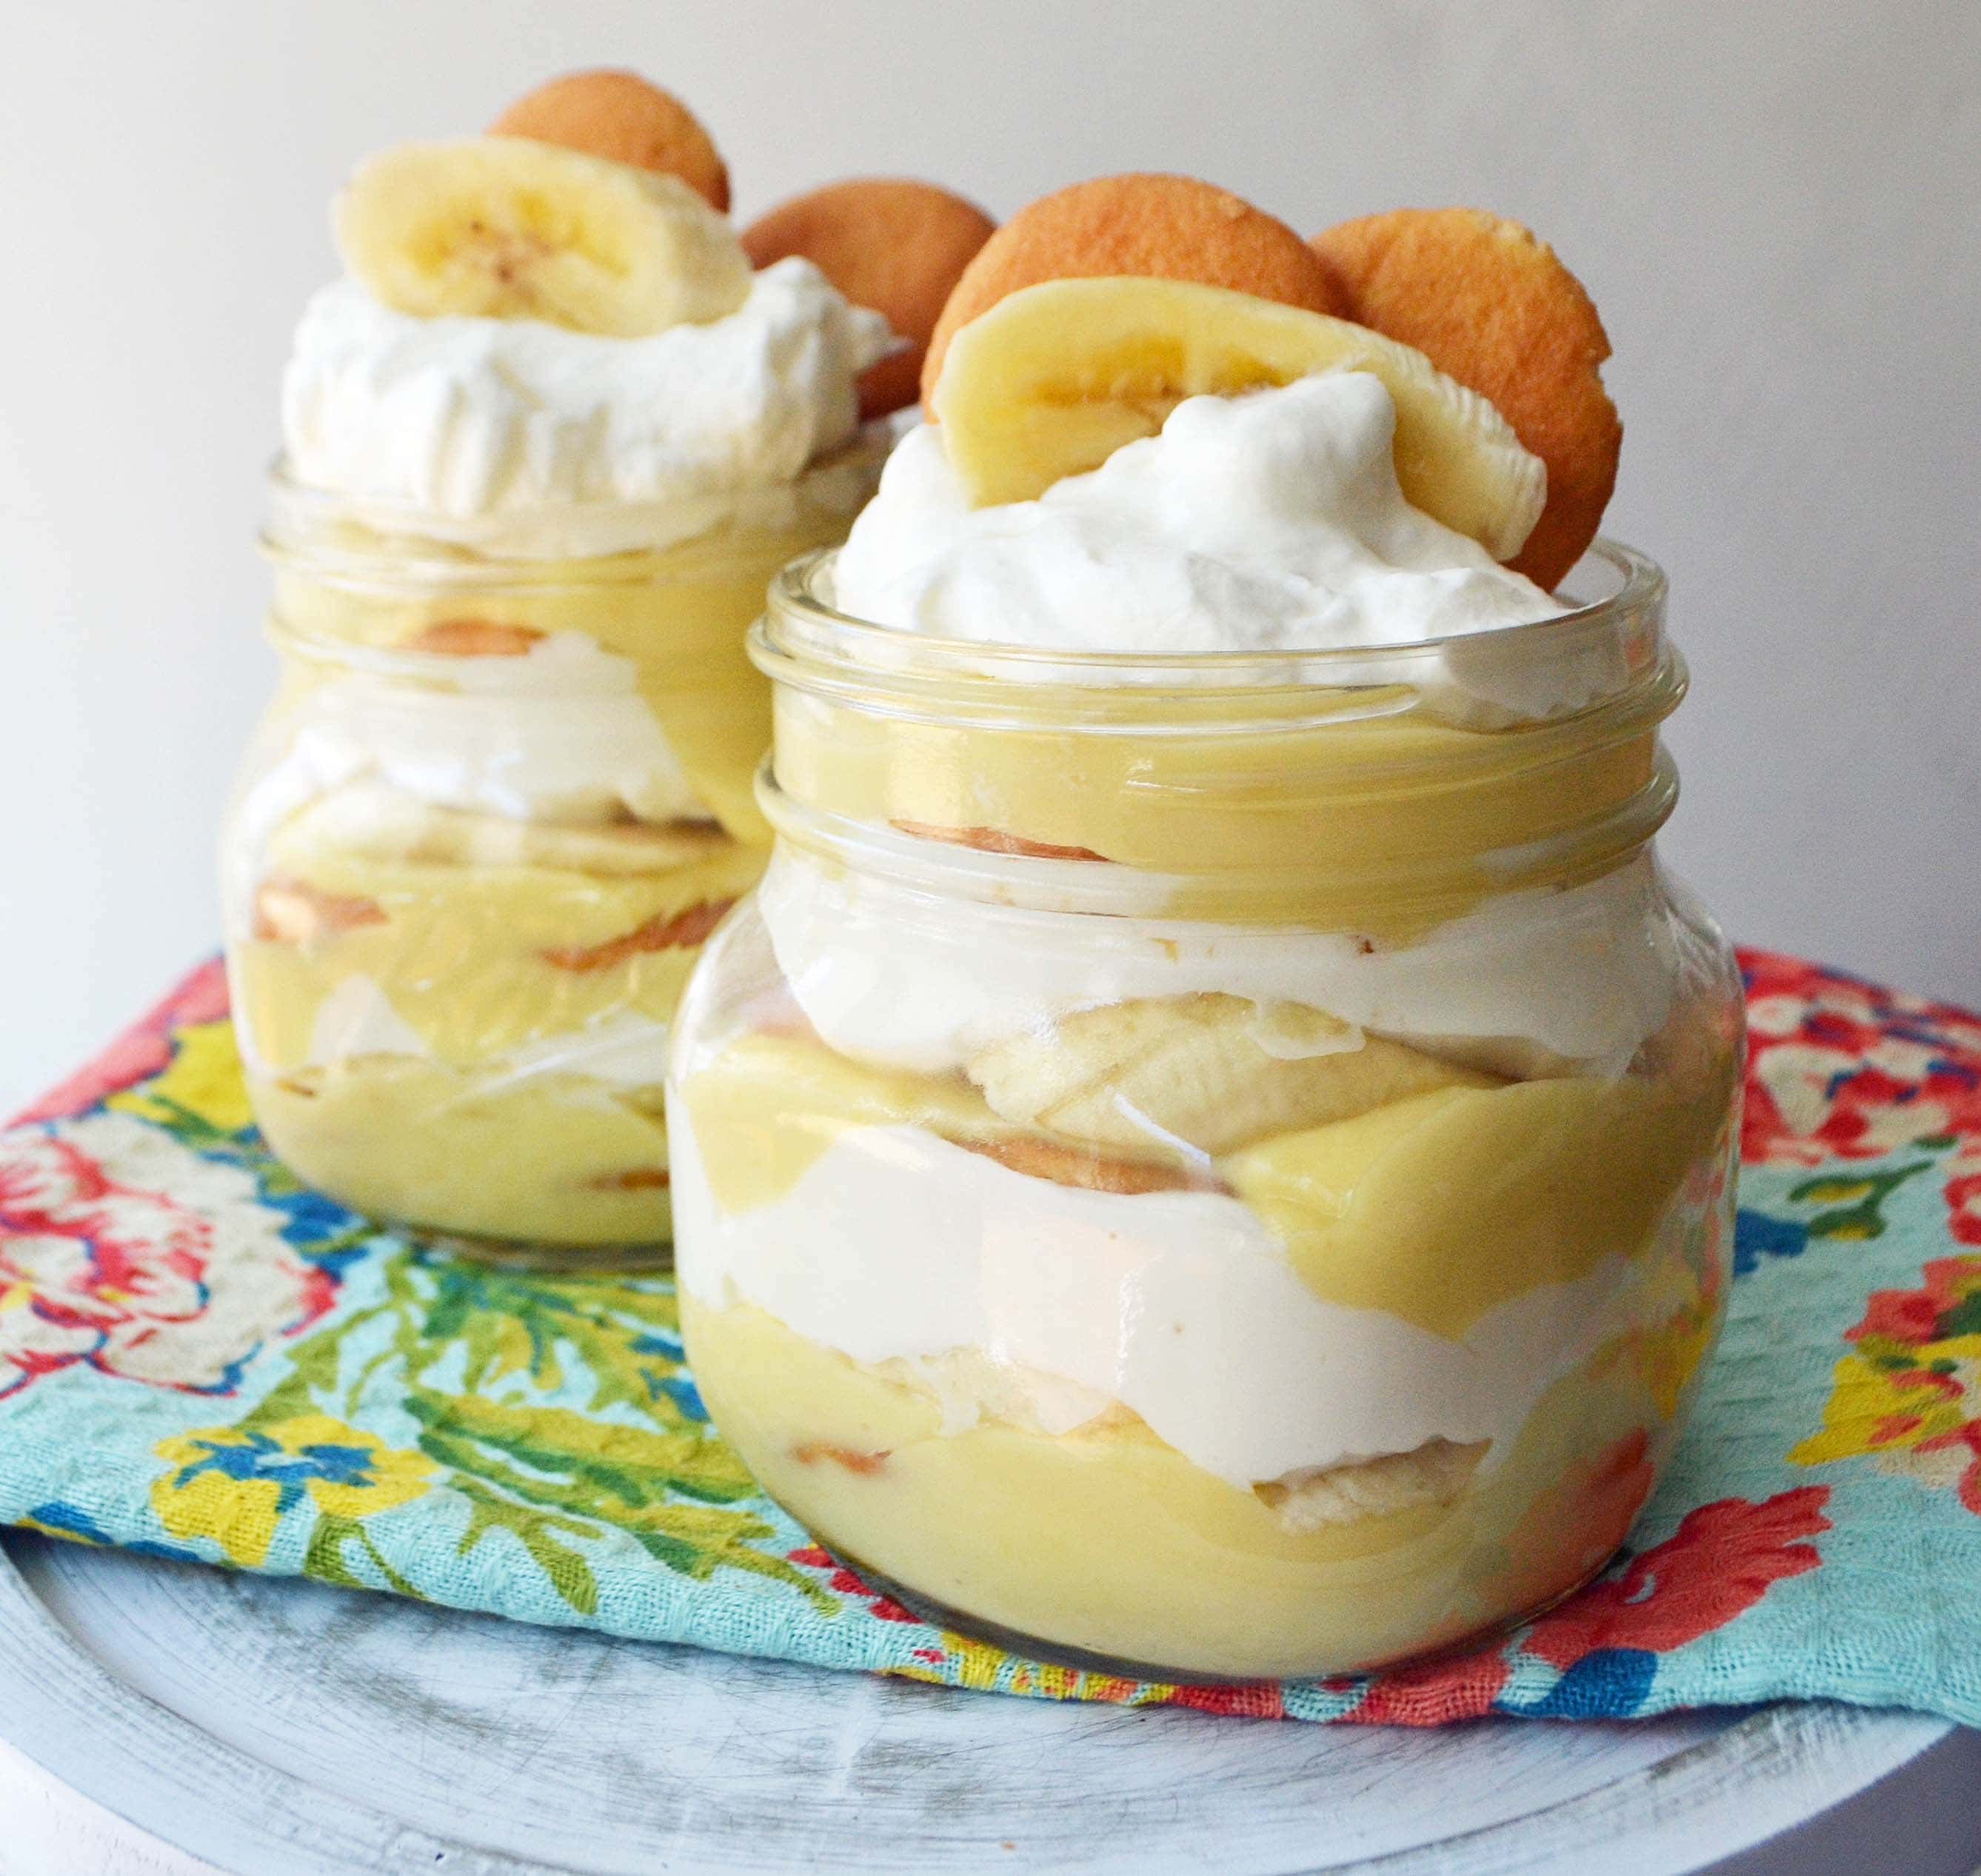 Homemade Banana Pudding Dessert Recipe. Slow cooked vanilla bean custard layered with fresh bananas, nilla wafers and fluffy whipped cream. A perfect Southern dessert and homemade Magnolia Bakery copycat with made from scratch pudding. www.modernhoney.com